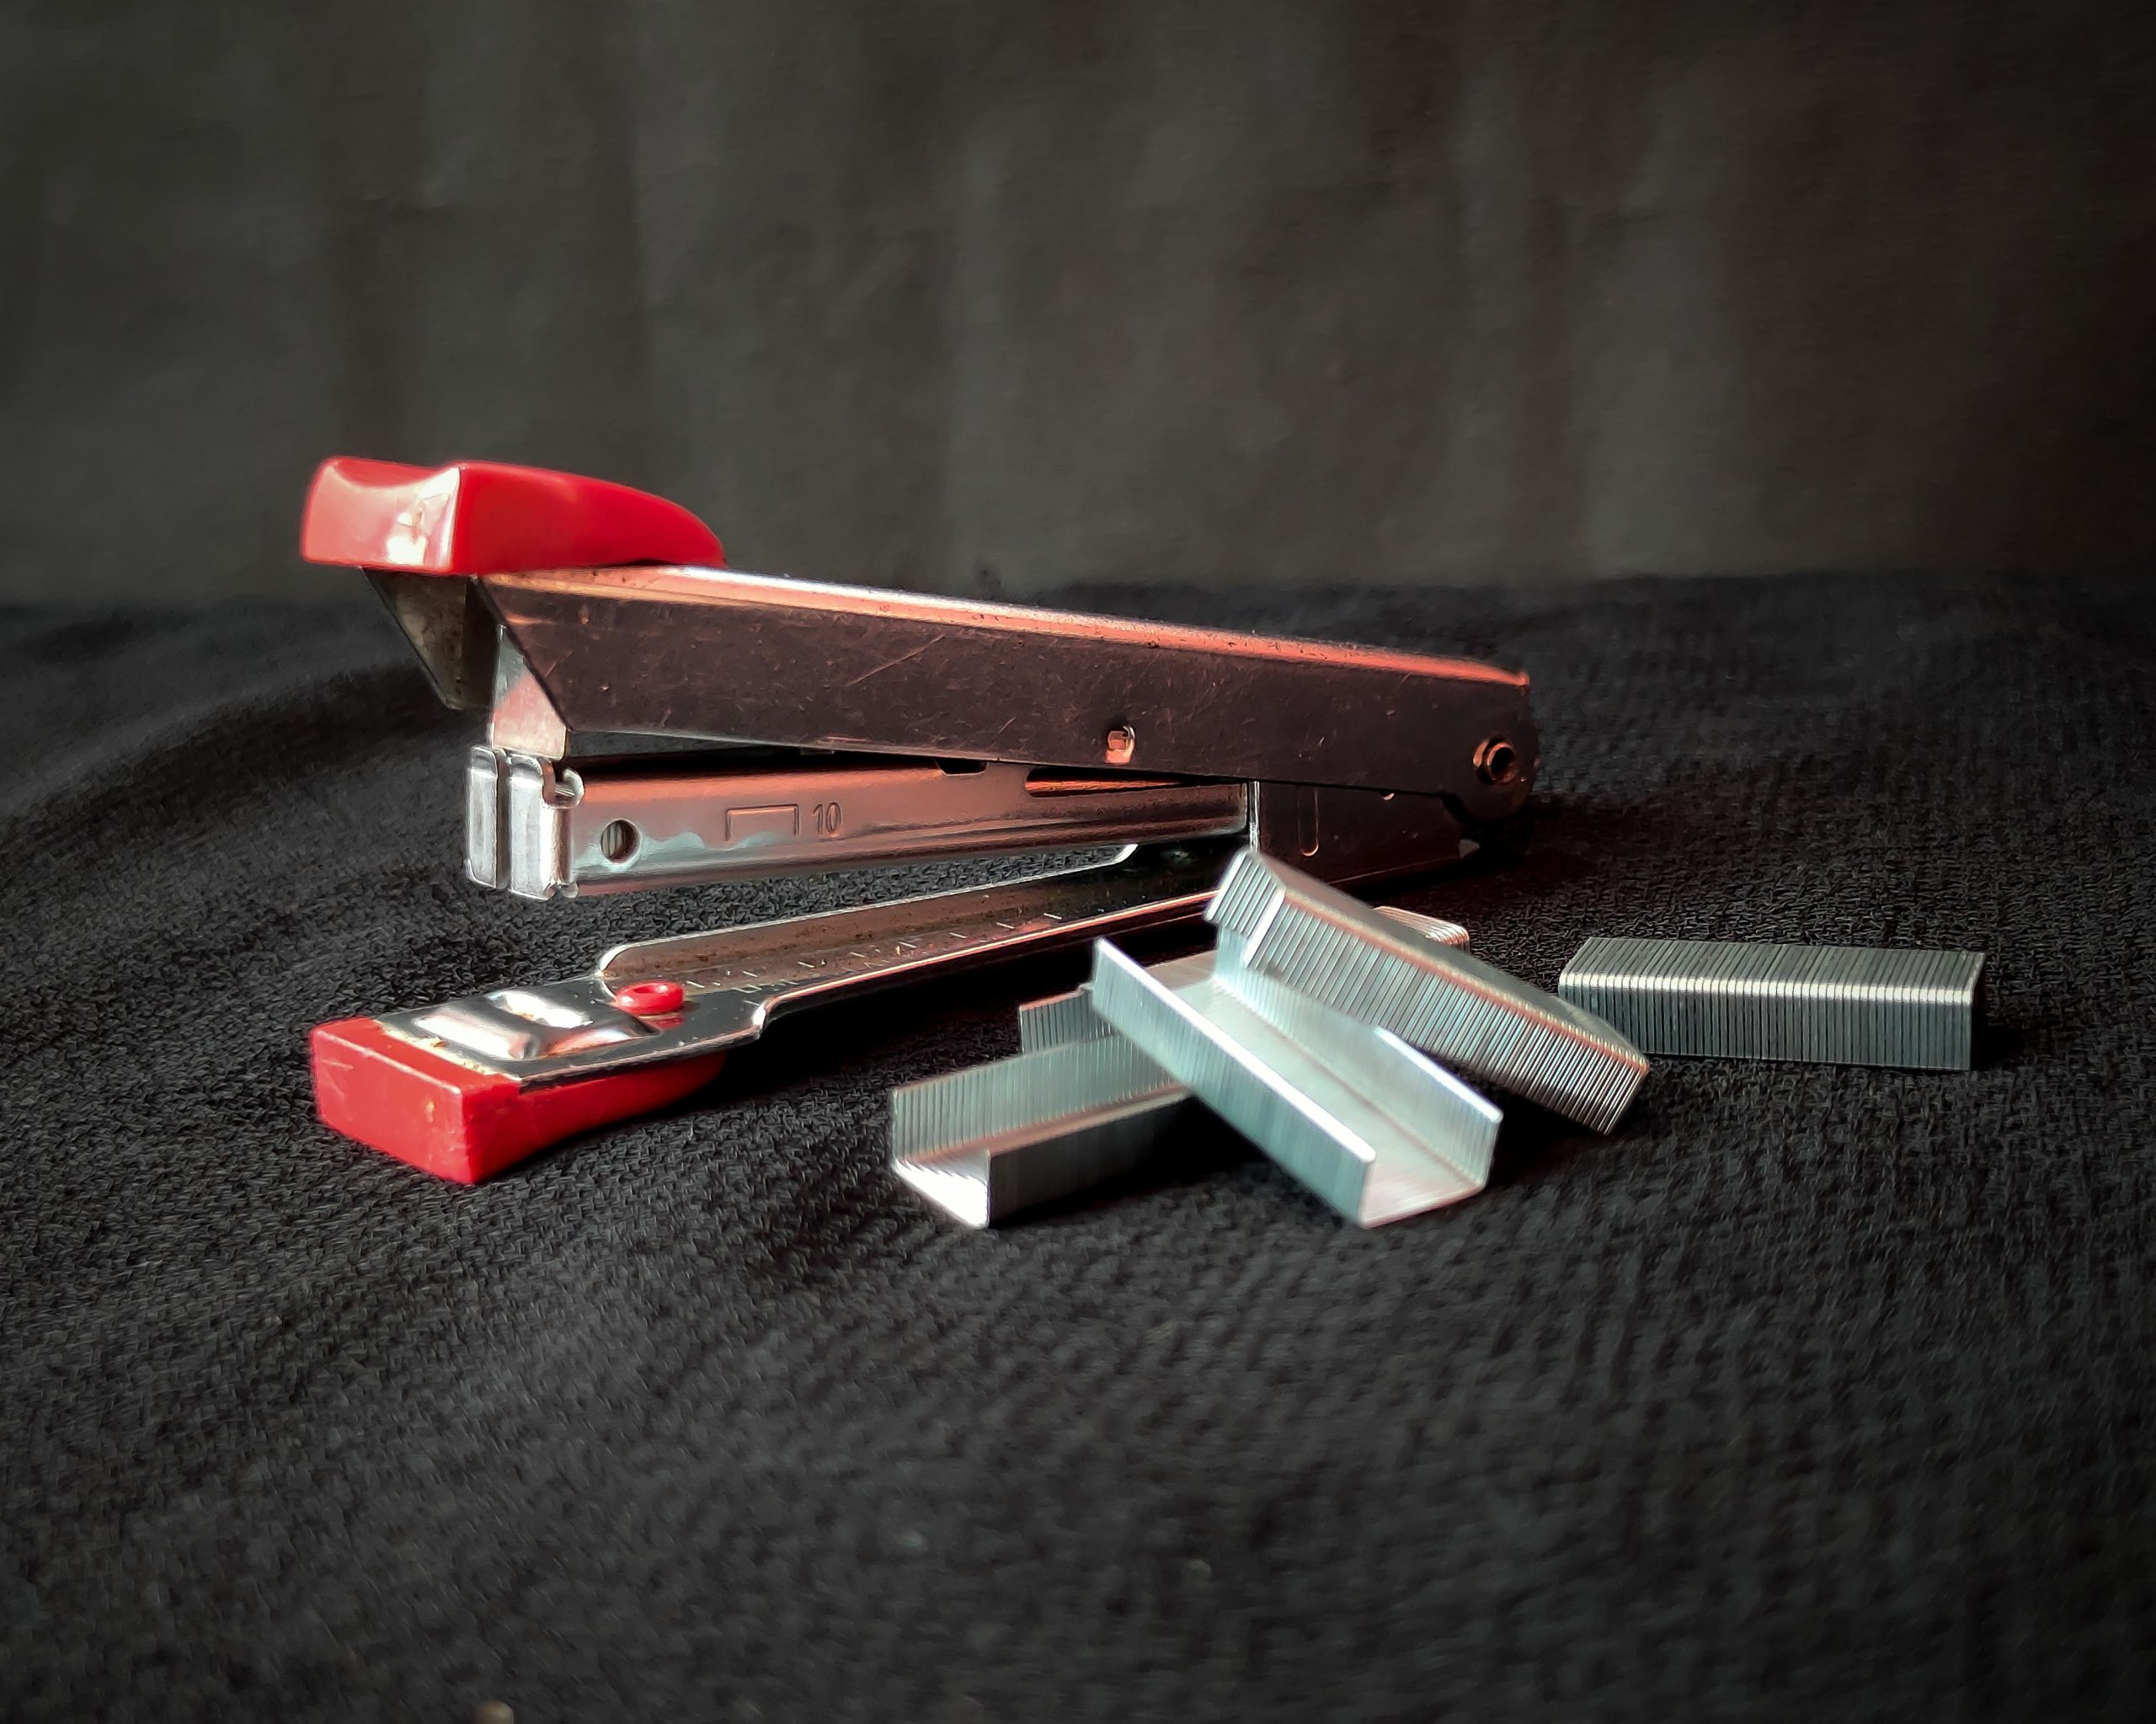 stapler and pins